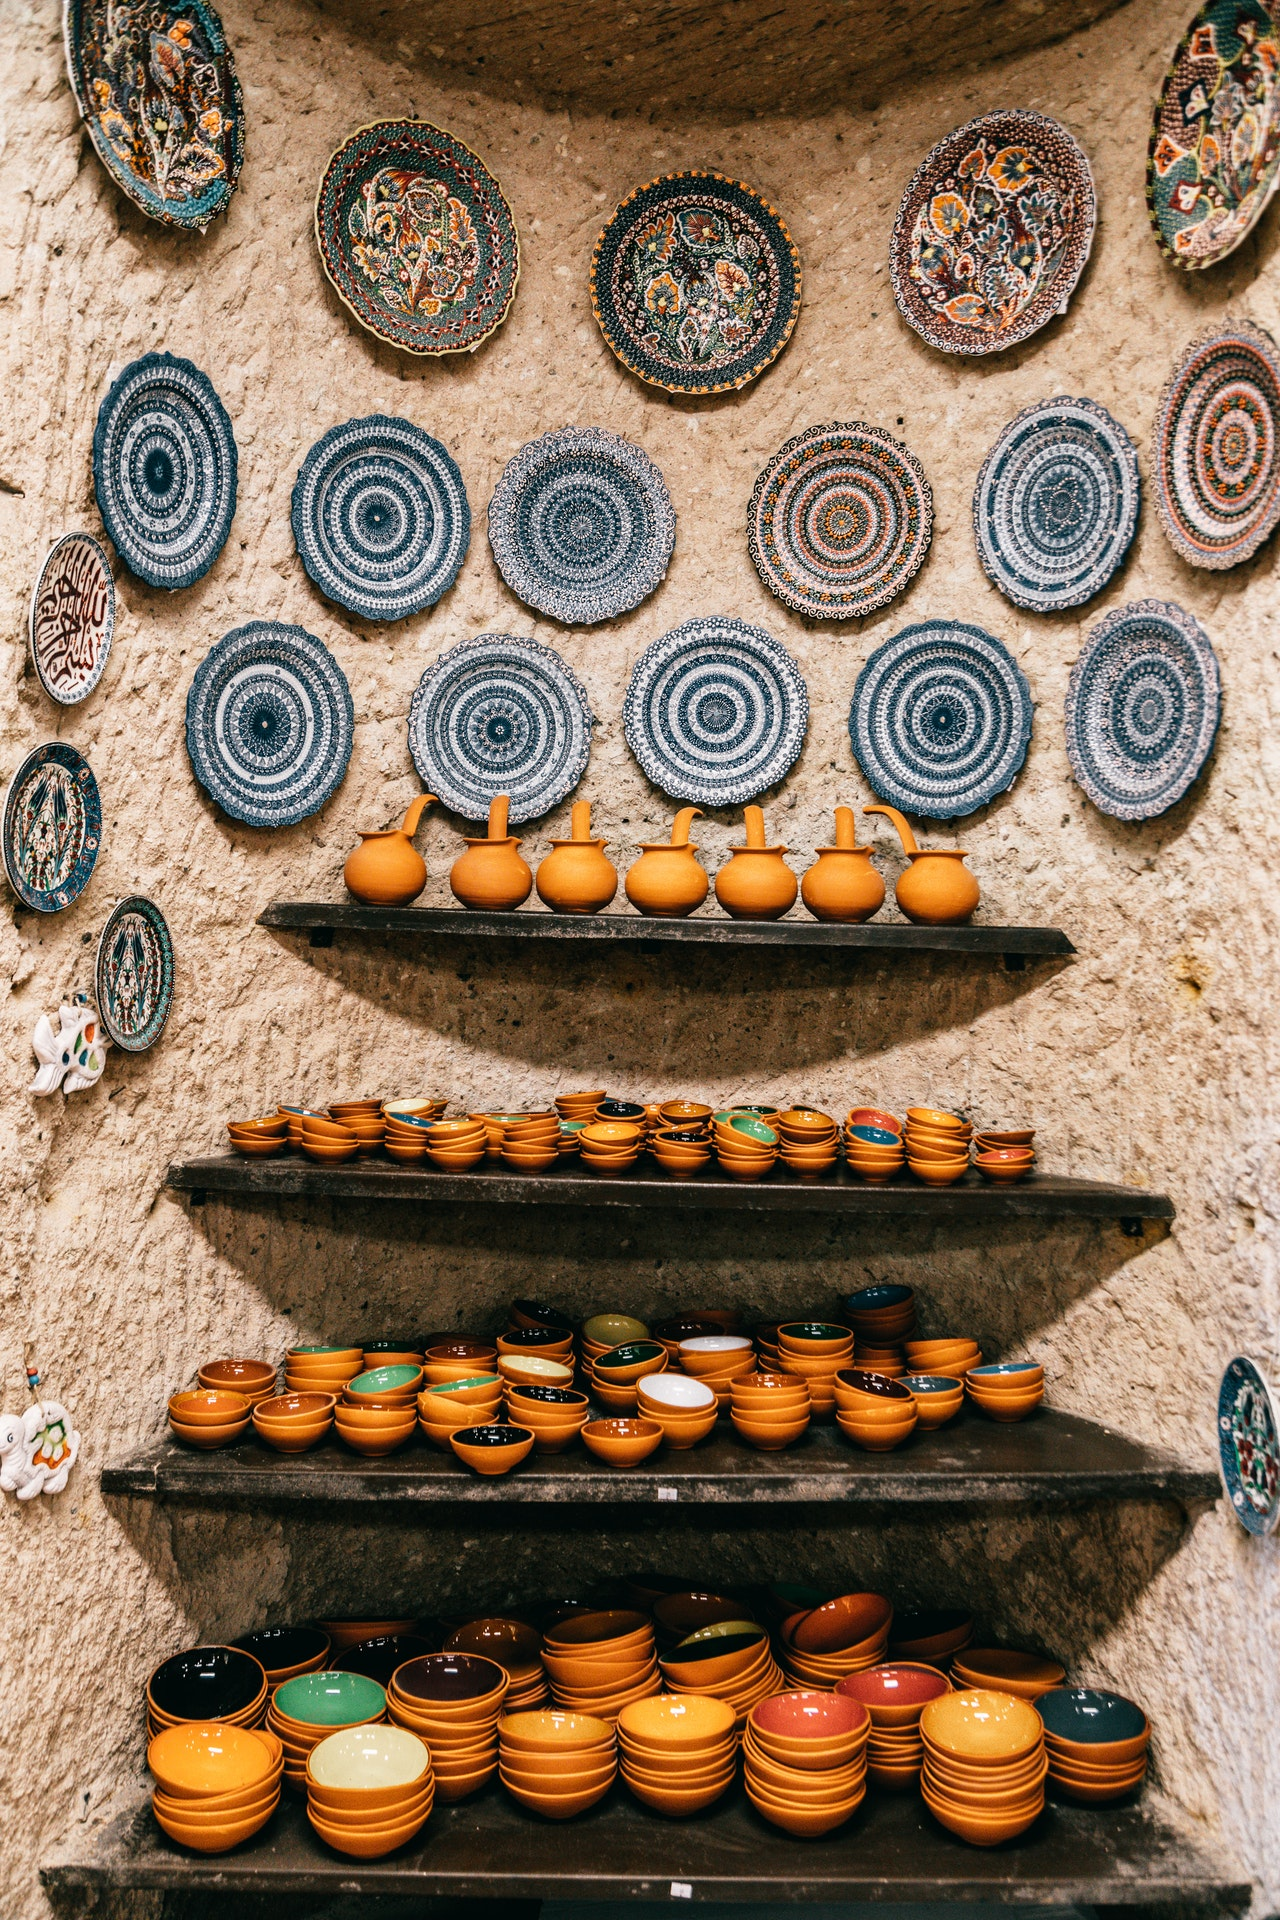 decorative plates hanging off the wall